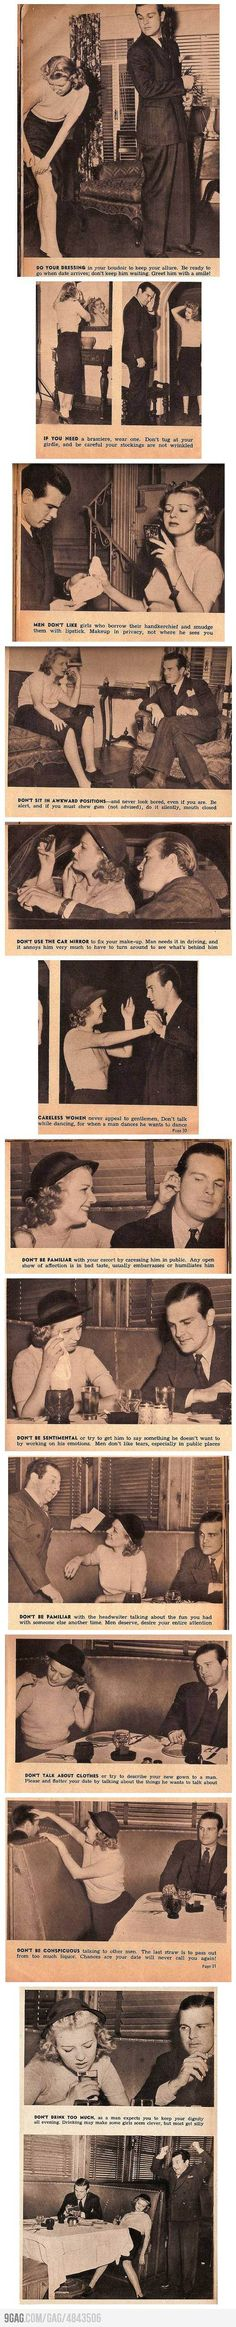 "Dating Advice for Women circa 1950 ""And don't talk while dancing, for when a man dances he wants to dance."" Bahahaha"